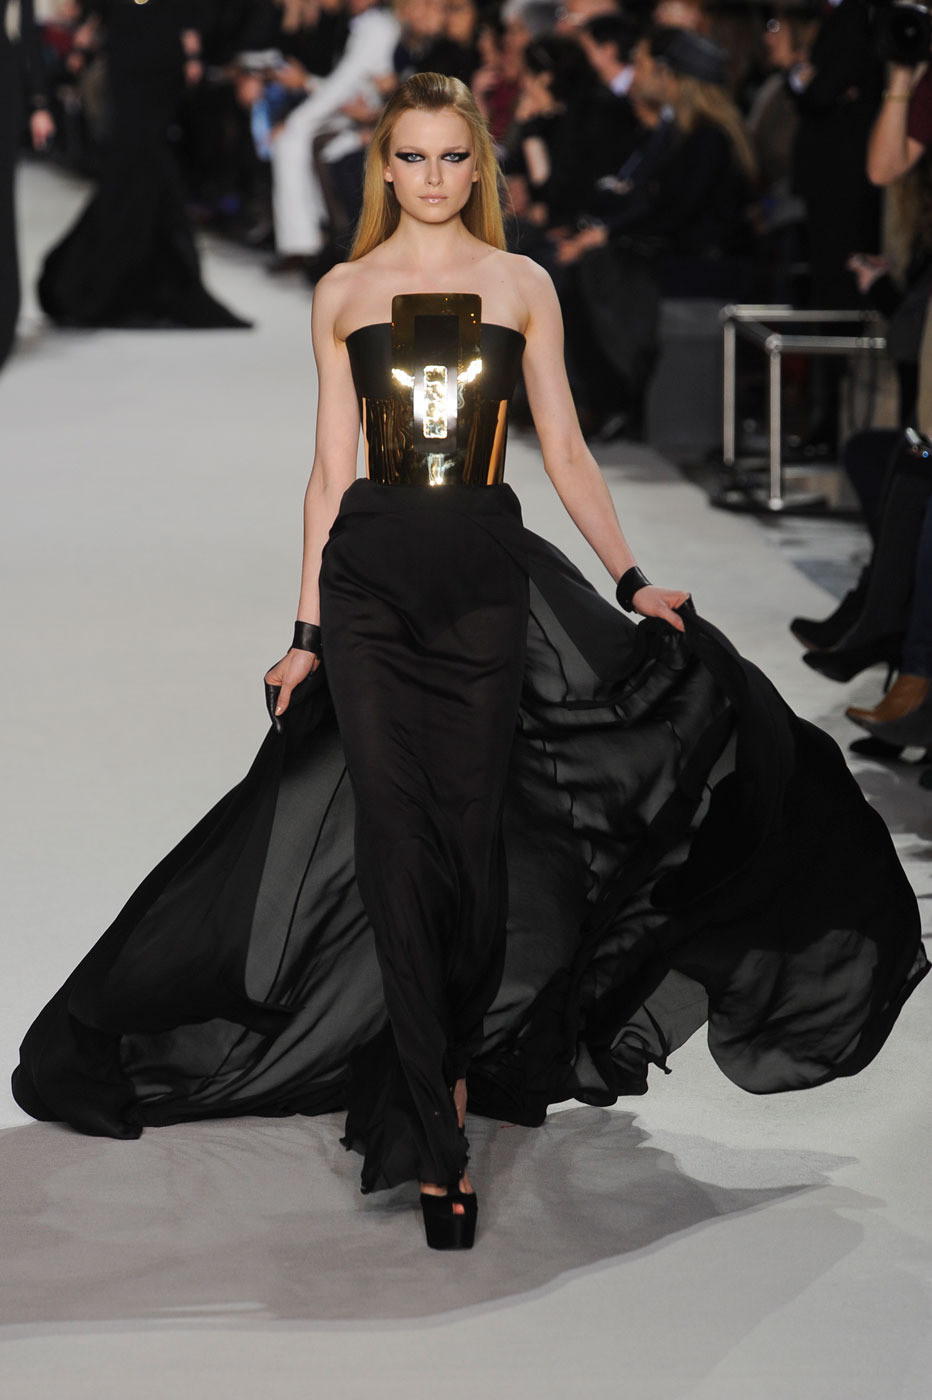 St phane rolland at couture spring 2012 stylebistro for American haute couture designers